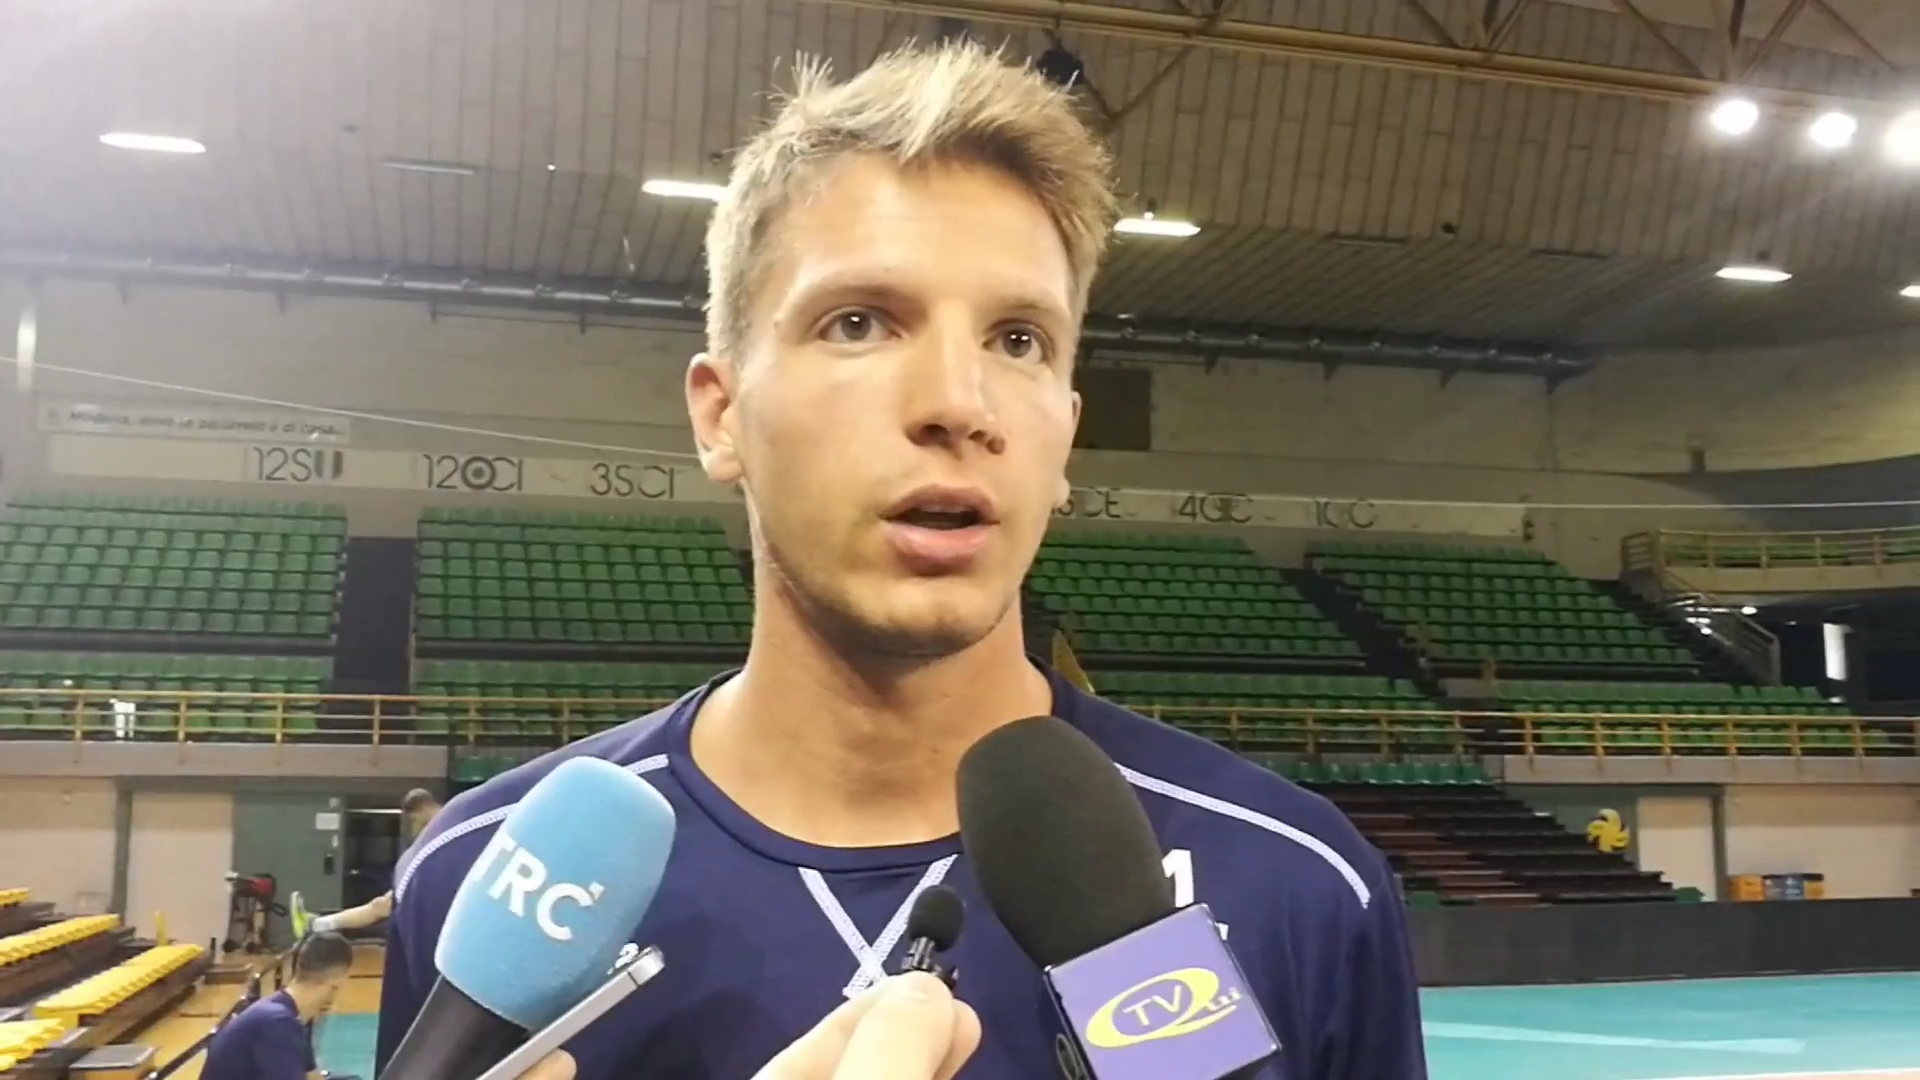 Modena Volley, intervista Elia Bossi